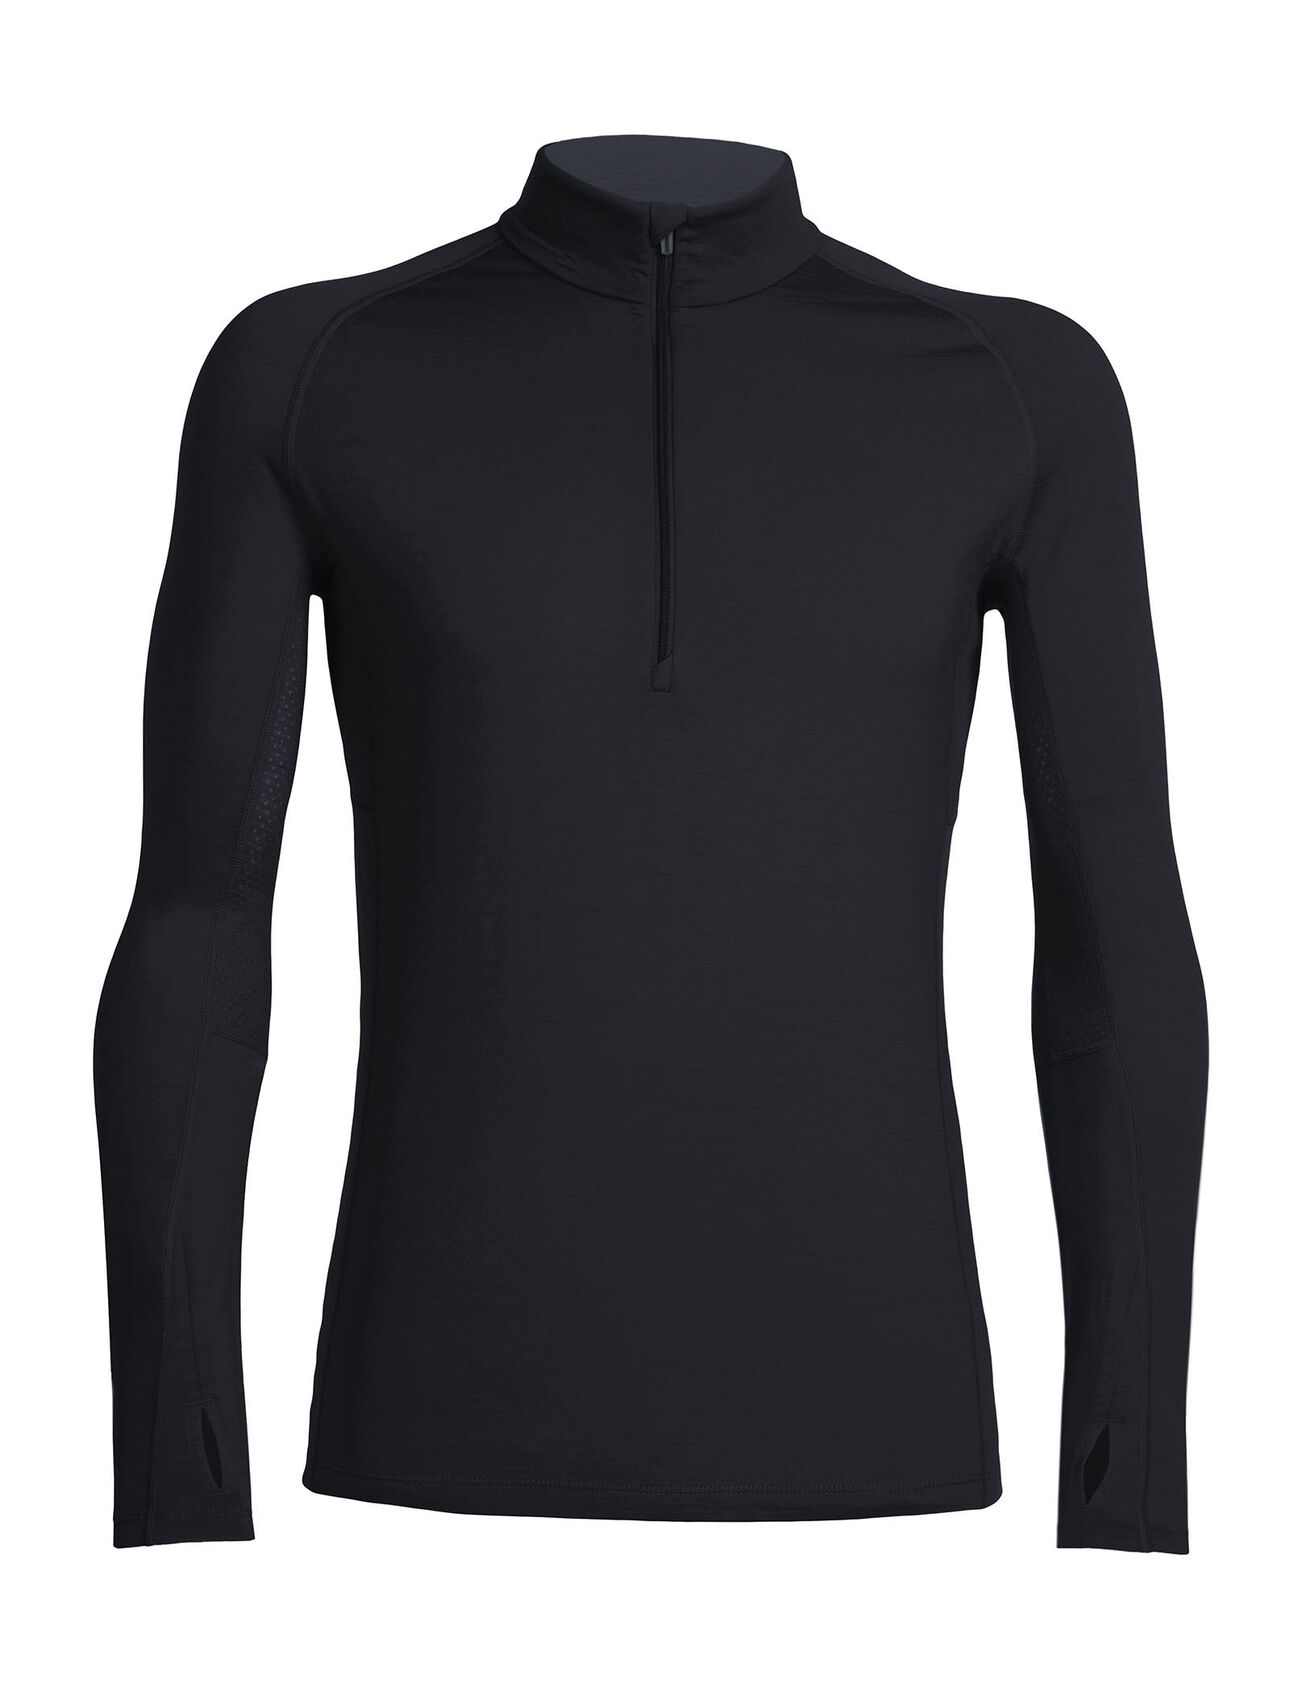 Buy Icebreaker Merino to keep your wardrobe stylish